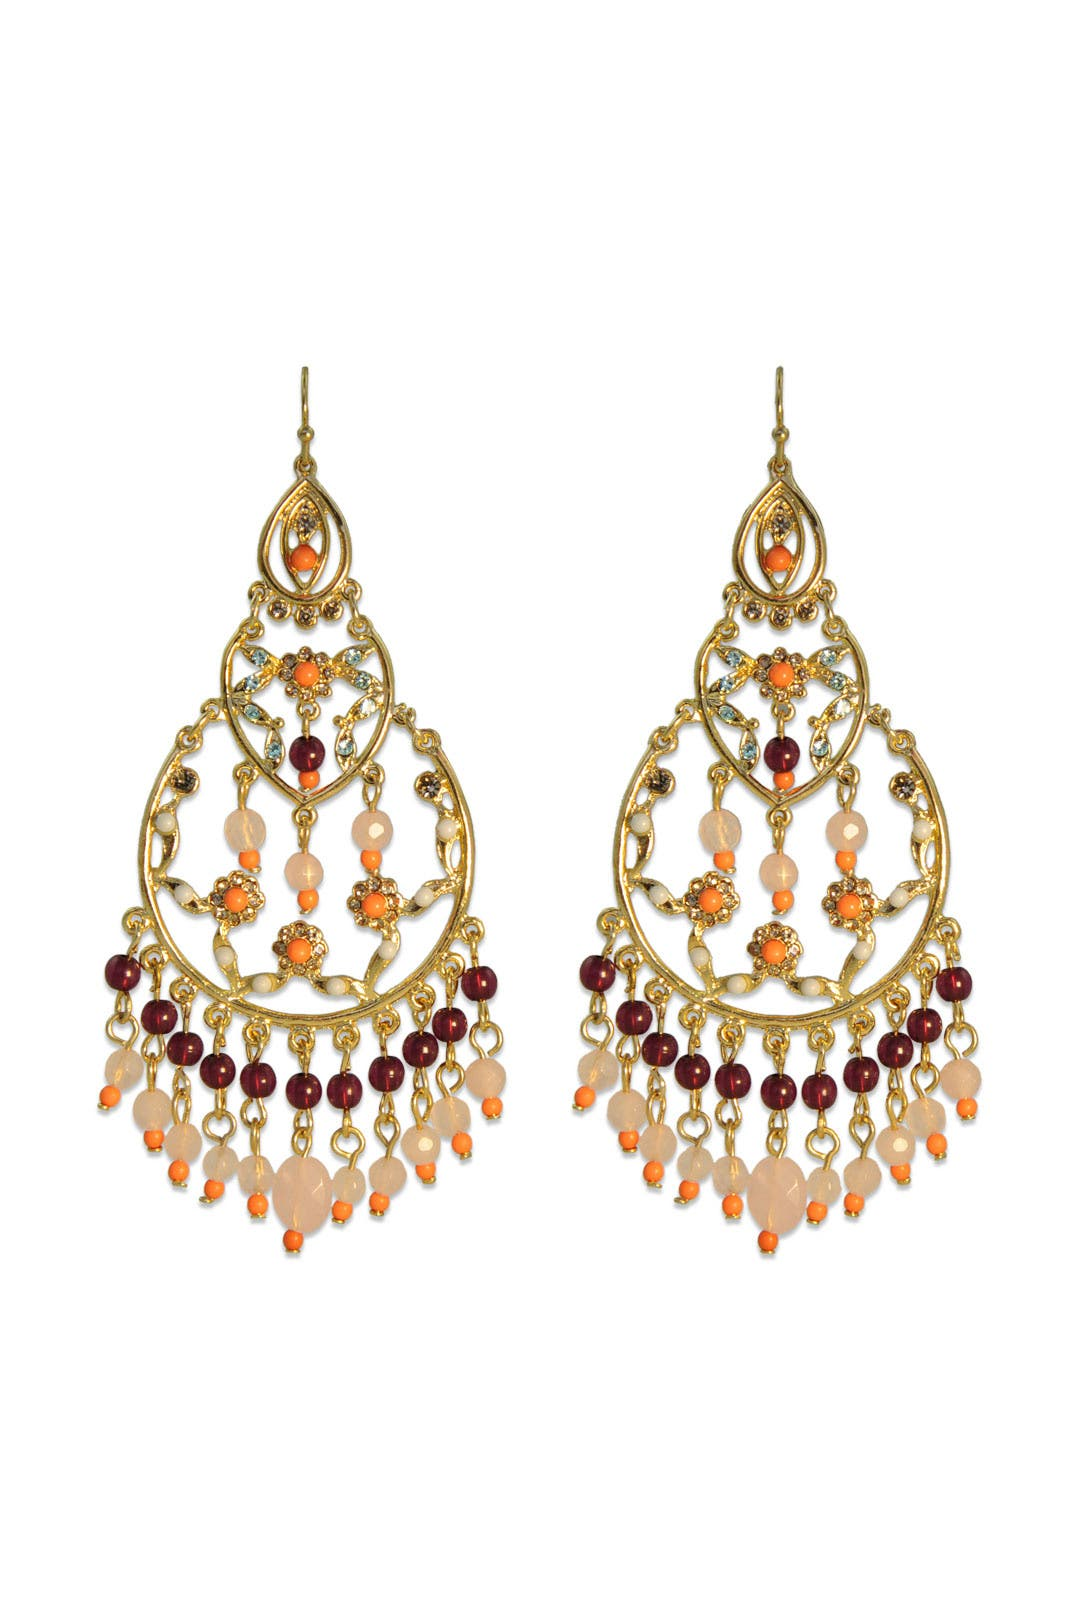 Nights In Bombay Earrings by Lee Angel